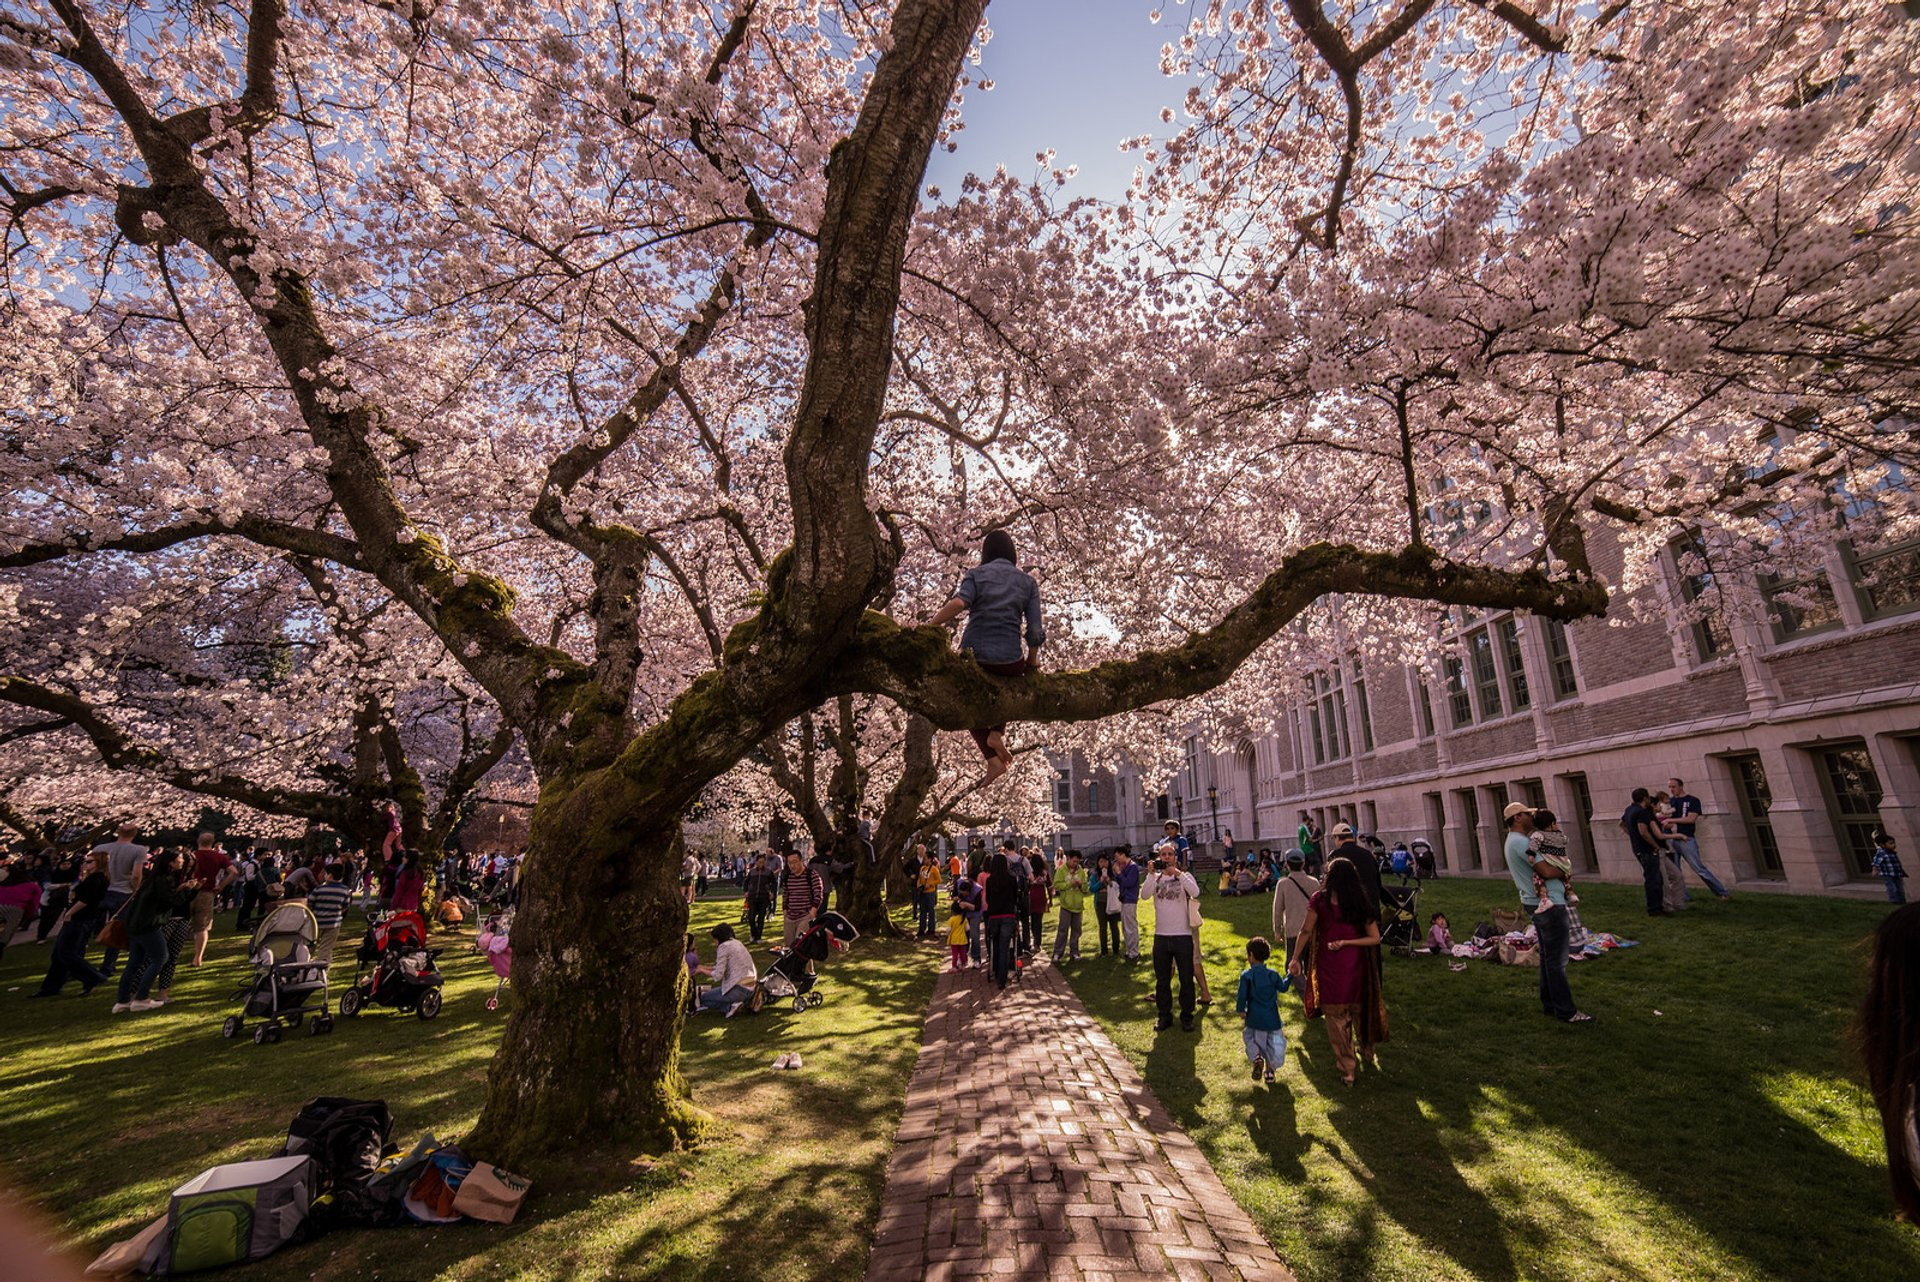 Cherry Blossoms in Washington, D.C. - Best Season 2020